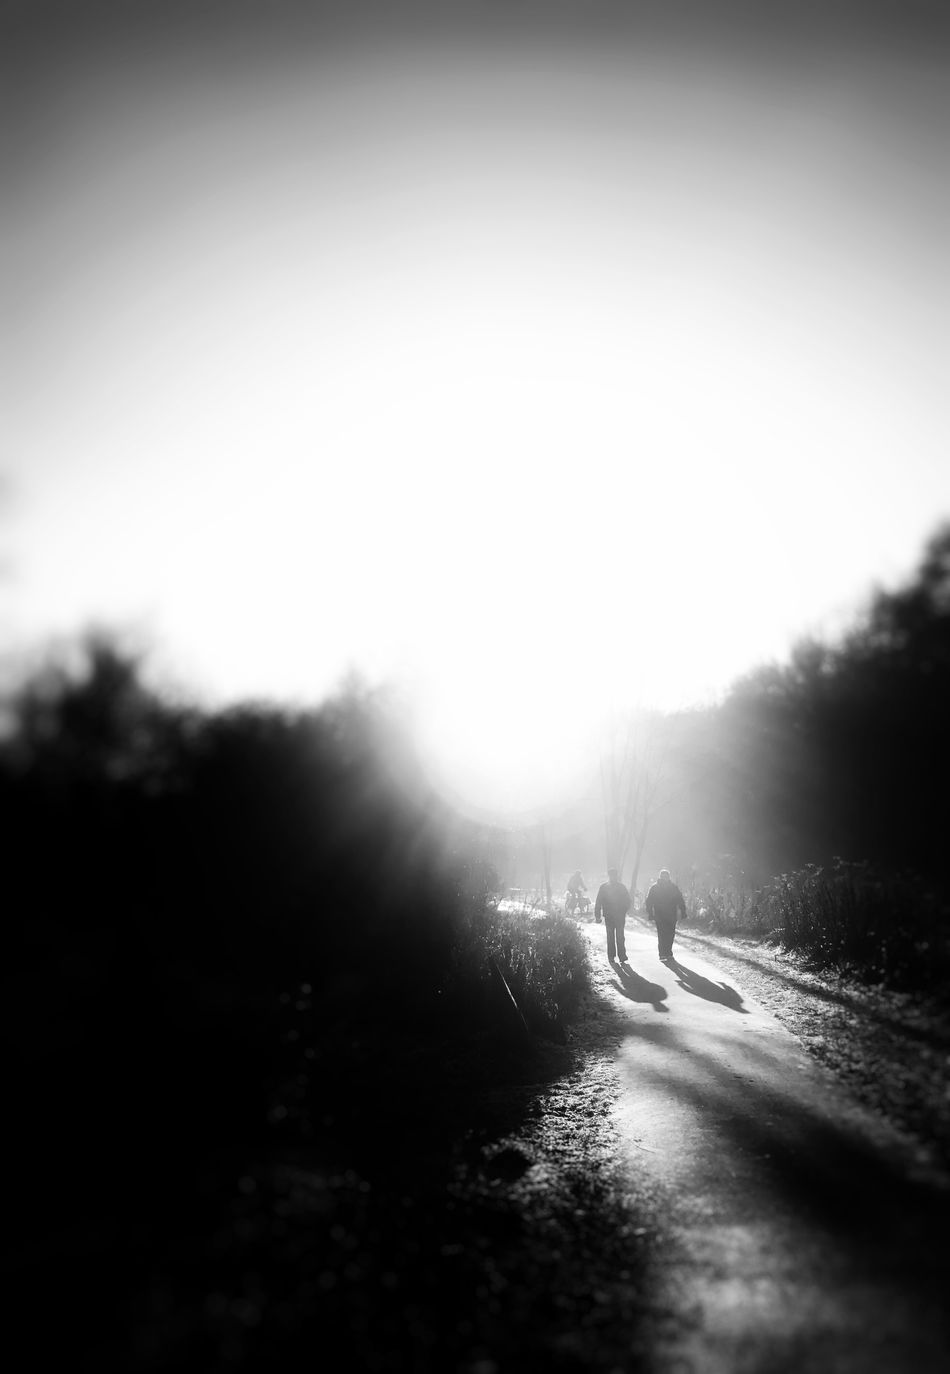 Real People Walking Two People Friends Black And White Photography Blackandwhite Photography Blackandwhite